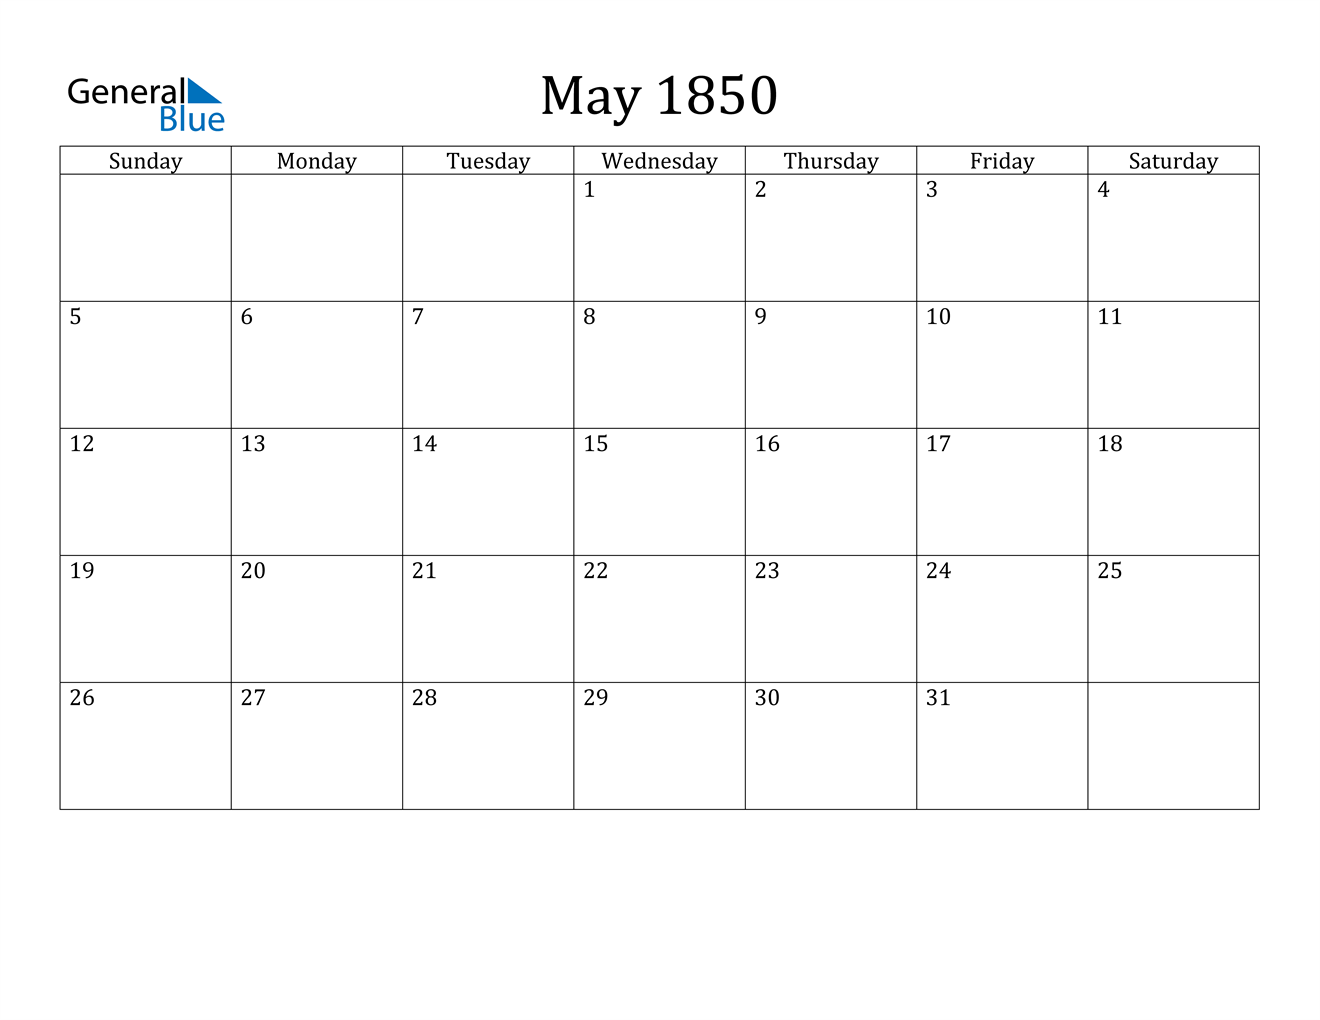 Image of May 1850 Calendar